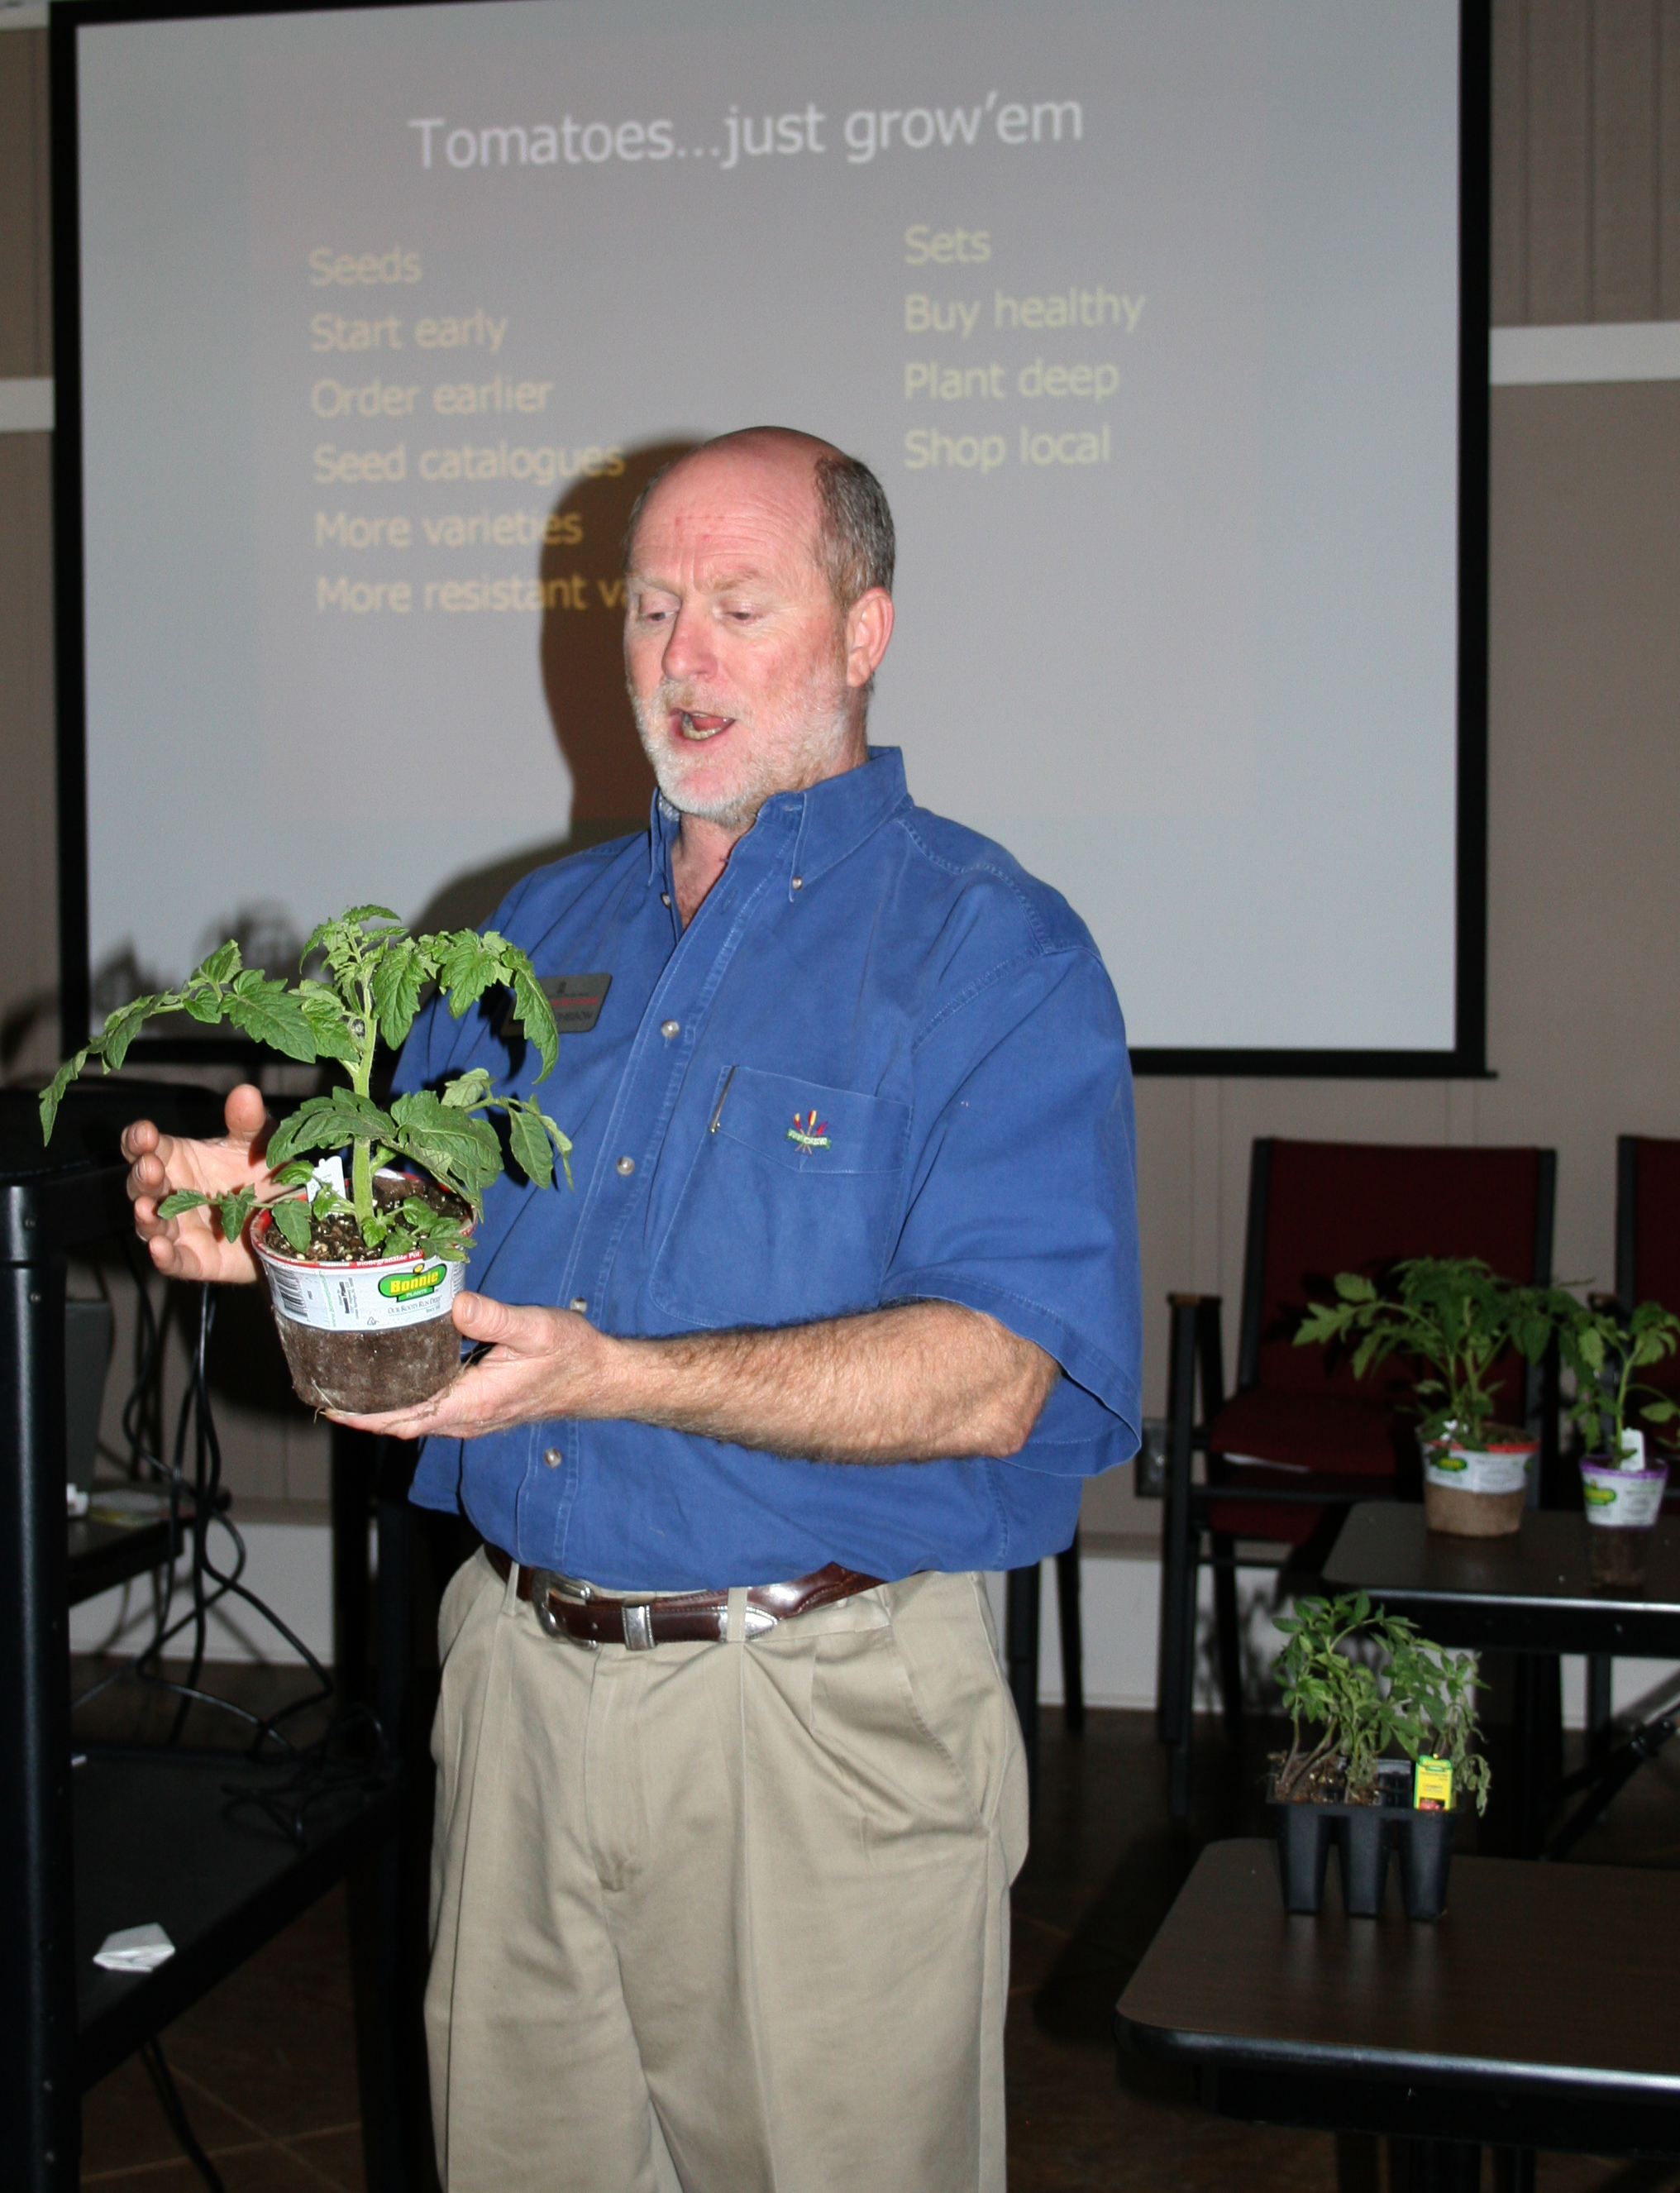 UGA Cooperative Extension agent Wade Hutcheson speaks from personal experience when he teaches classes on how to grow tomatoes in a home garden.  Hutcheson's personal favorite tomato variety is Rutgers.